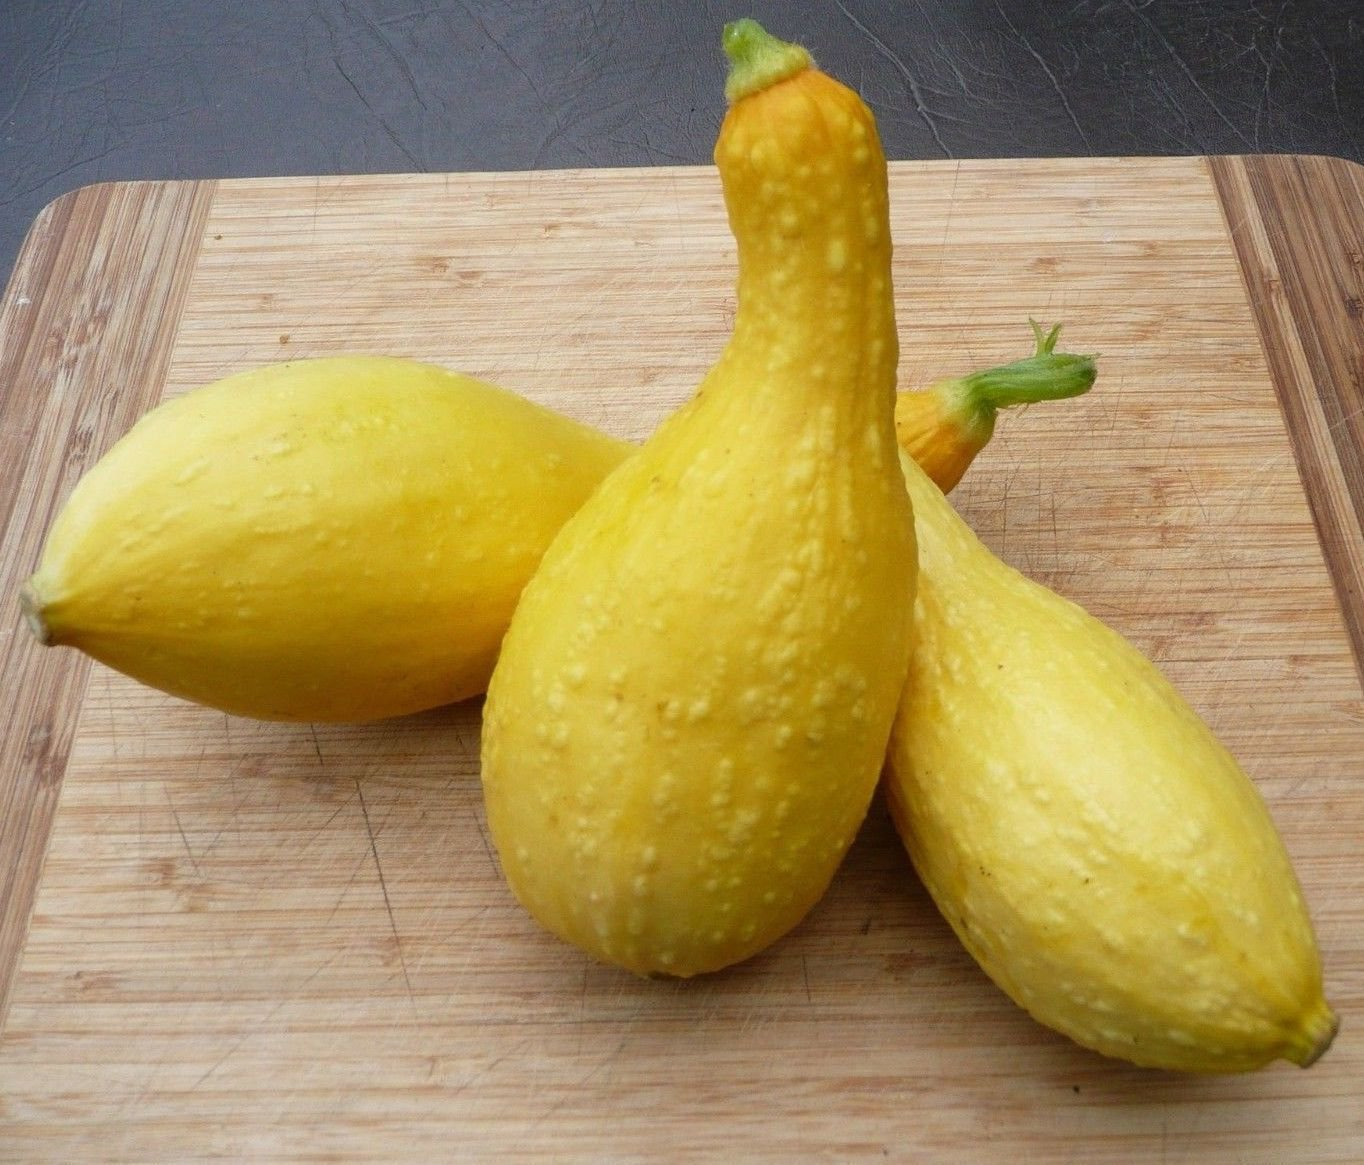 Golden Crookneck Zucchini Summer Squash 25 seeds * Heirloom *Non GMO* *SHIPPING FROM US* CombSH H21